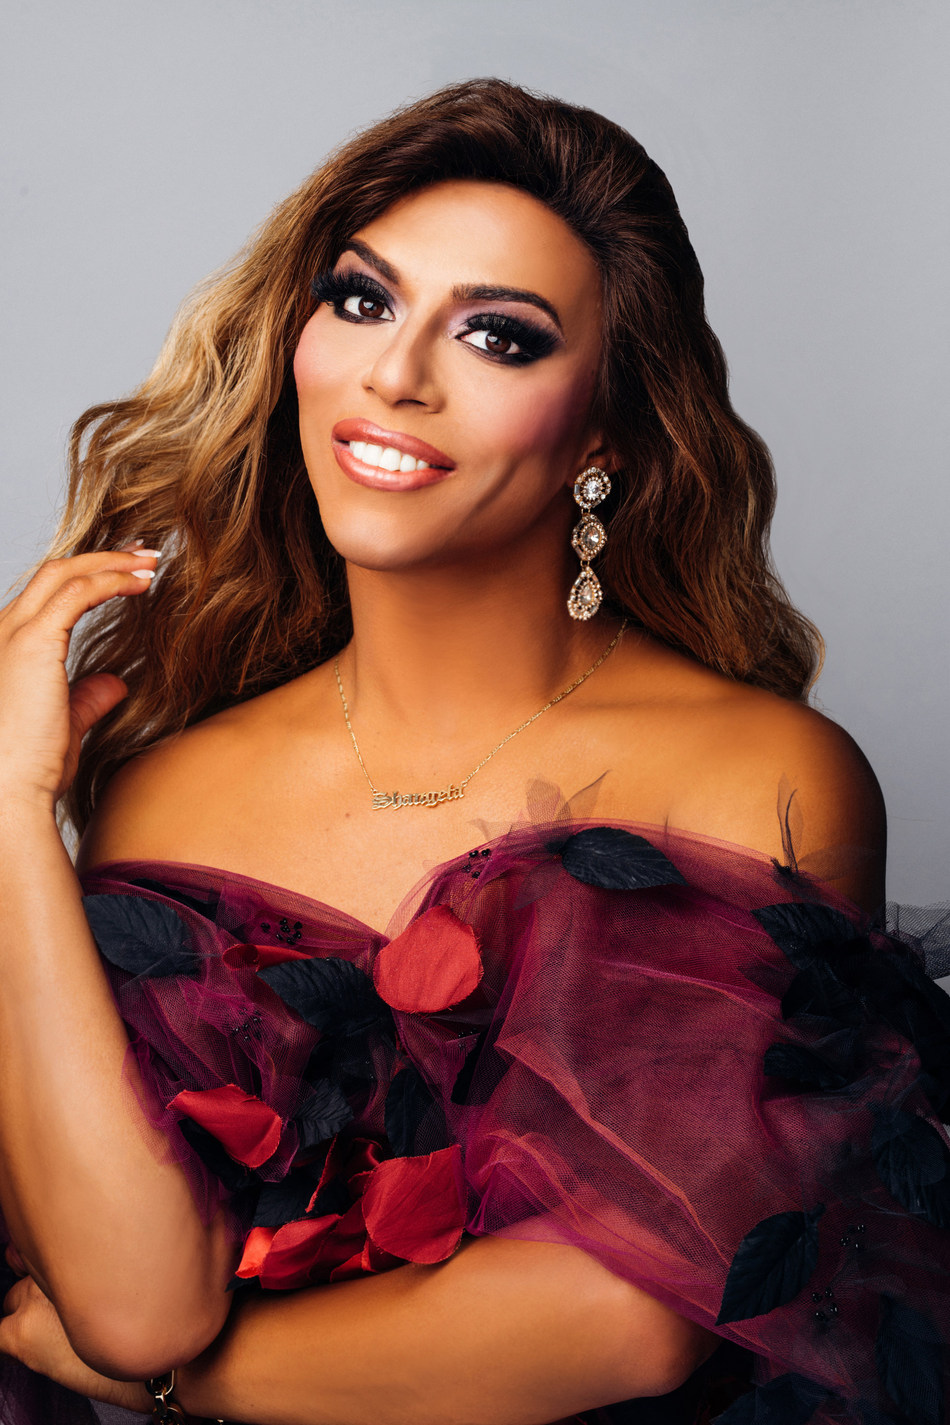 Shangela, actor and performer; photo taken by Taylor Miller. (CNW Group/Mars Canada Inc.)